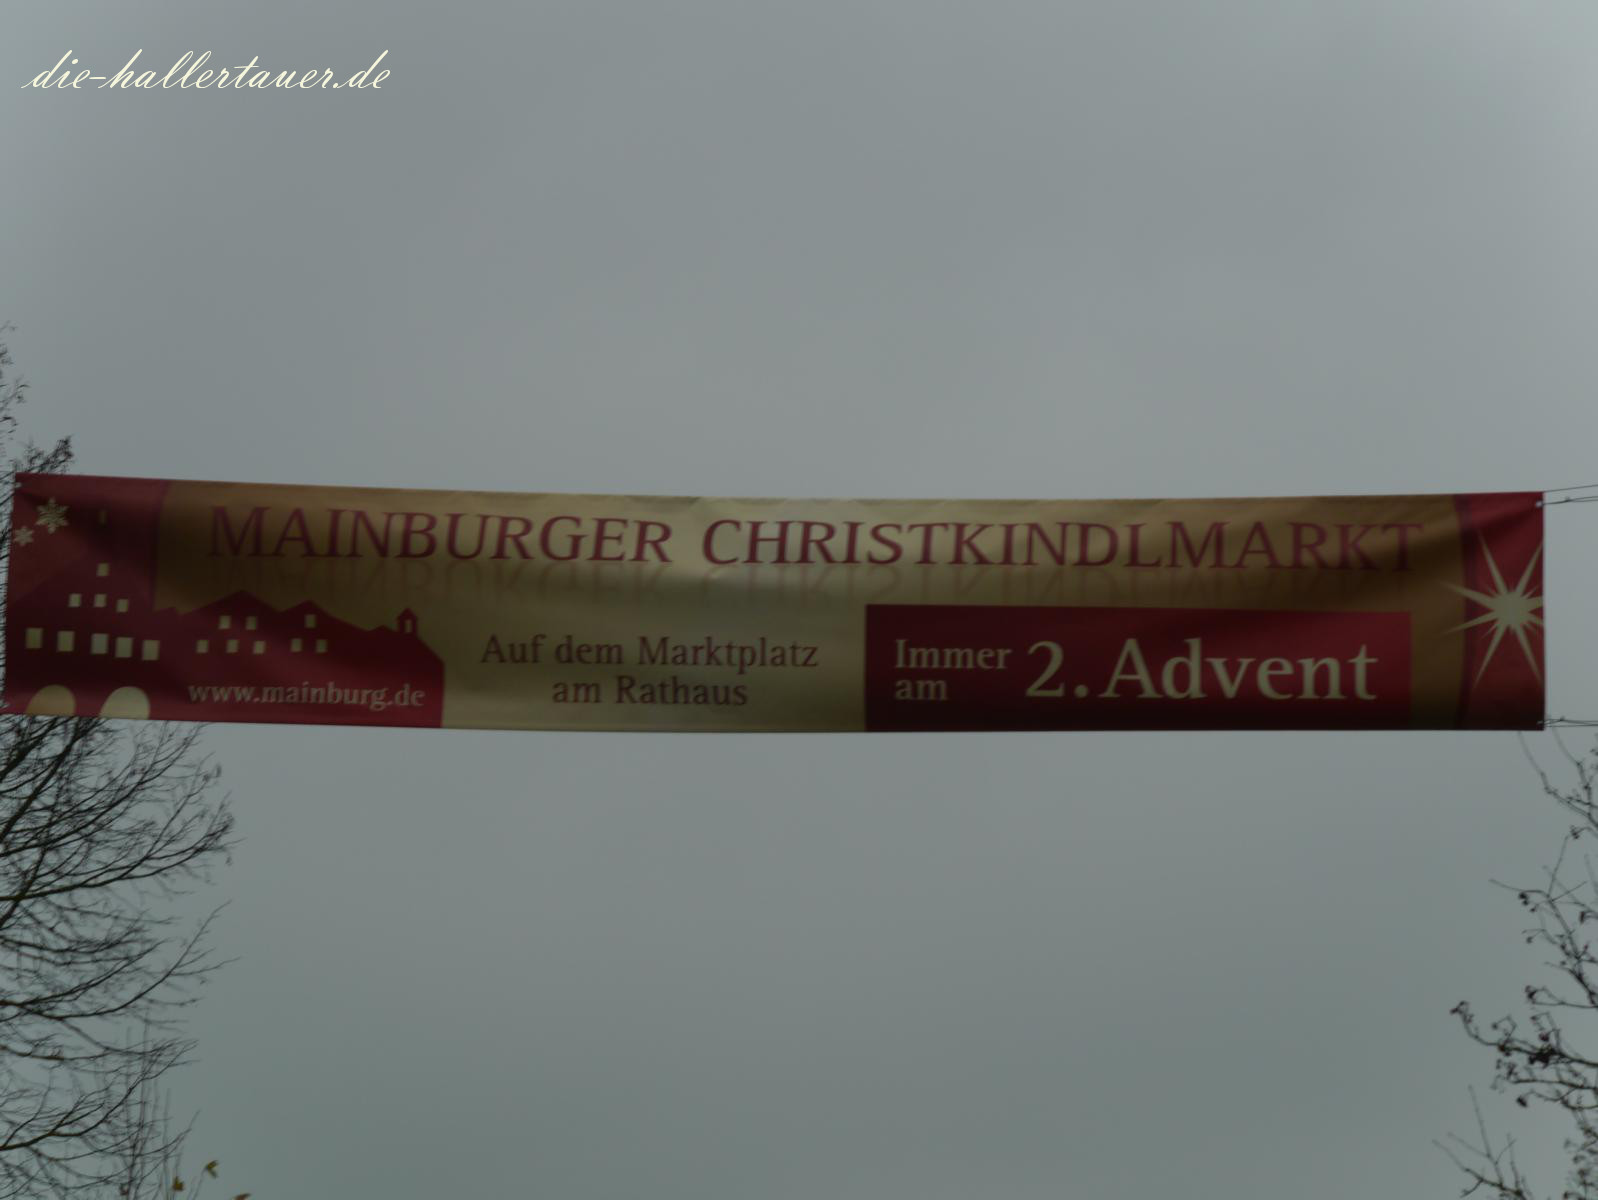 Christkindlmarkt Mainburg